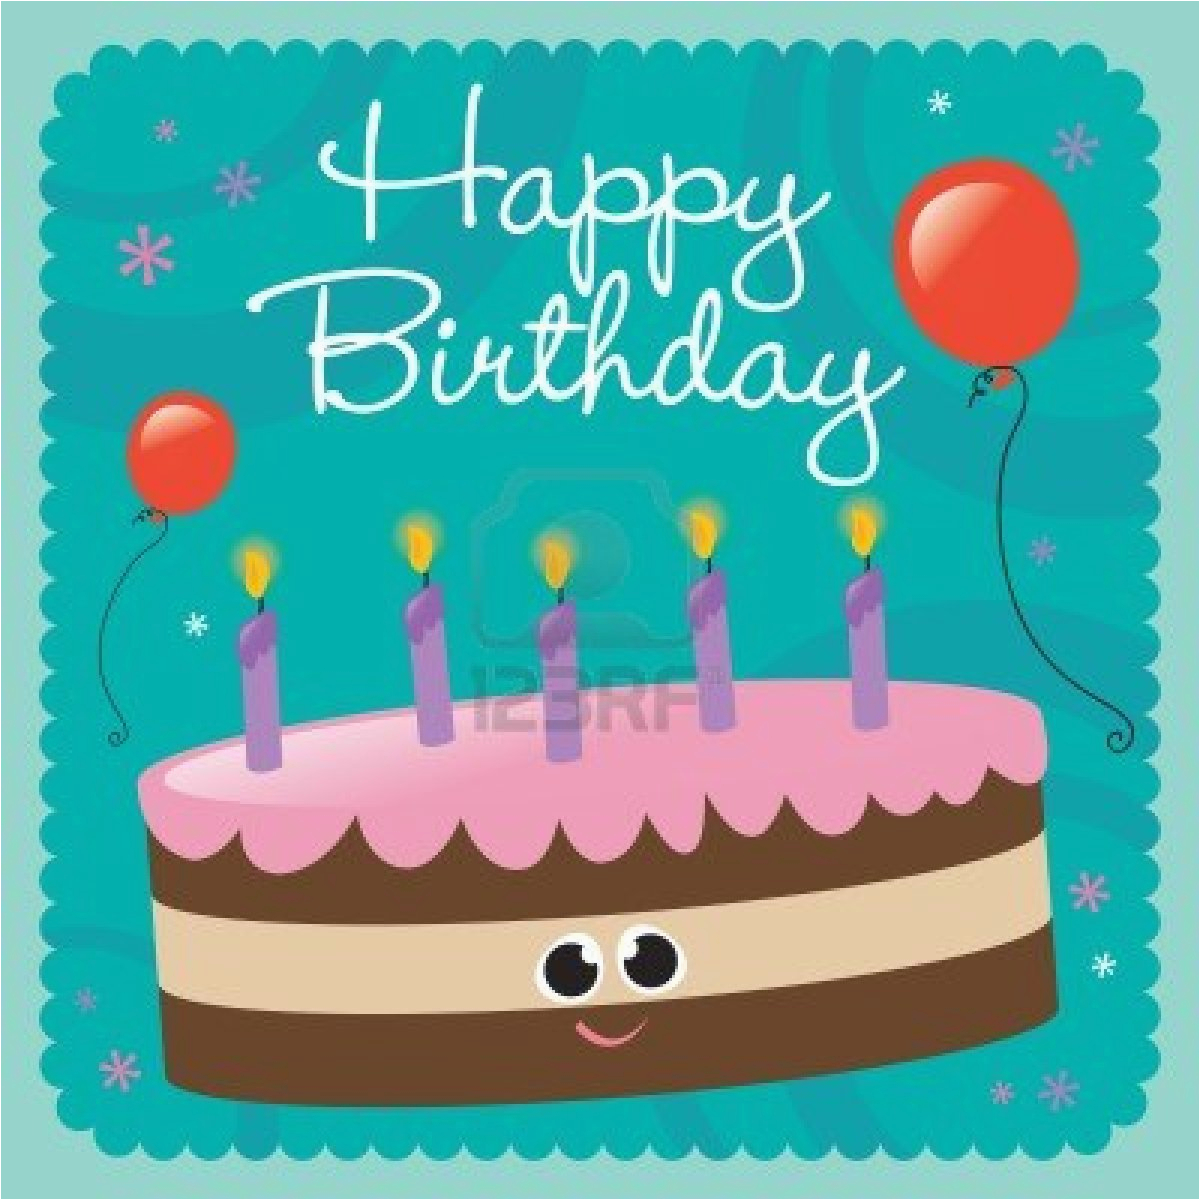 Online Free To Make Picture Happy Birthday Cards 1298